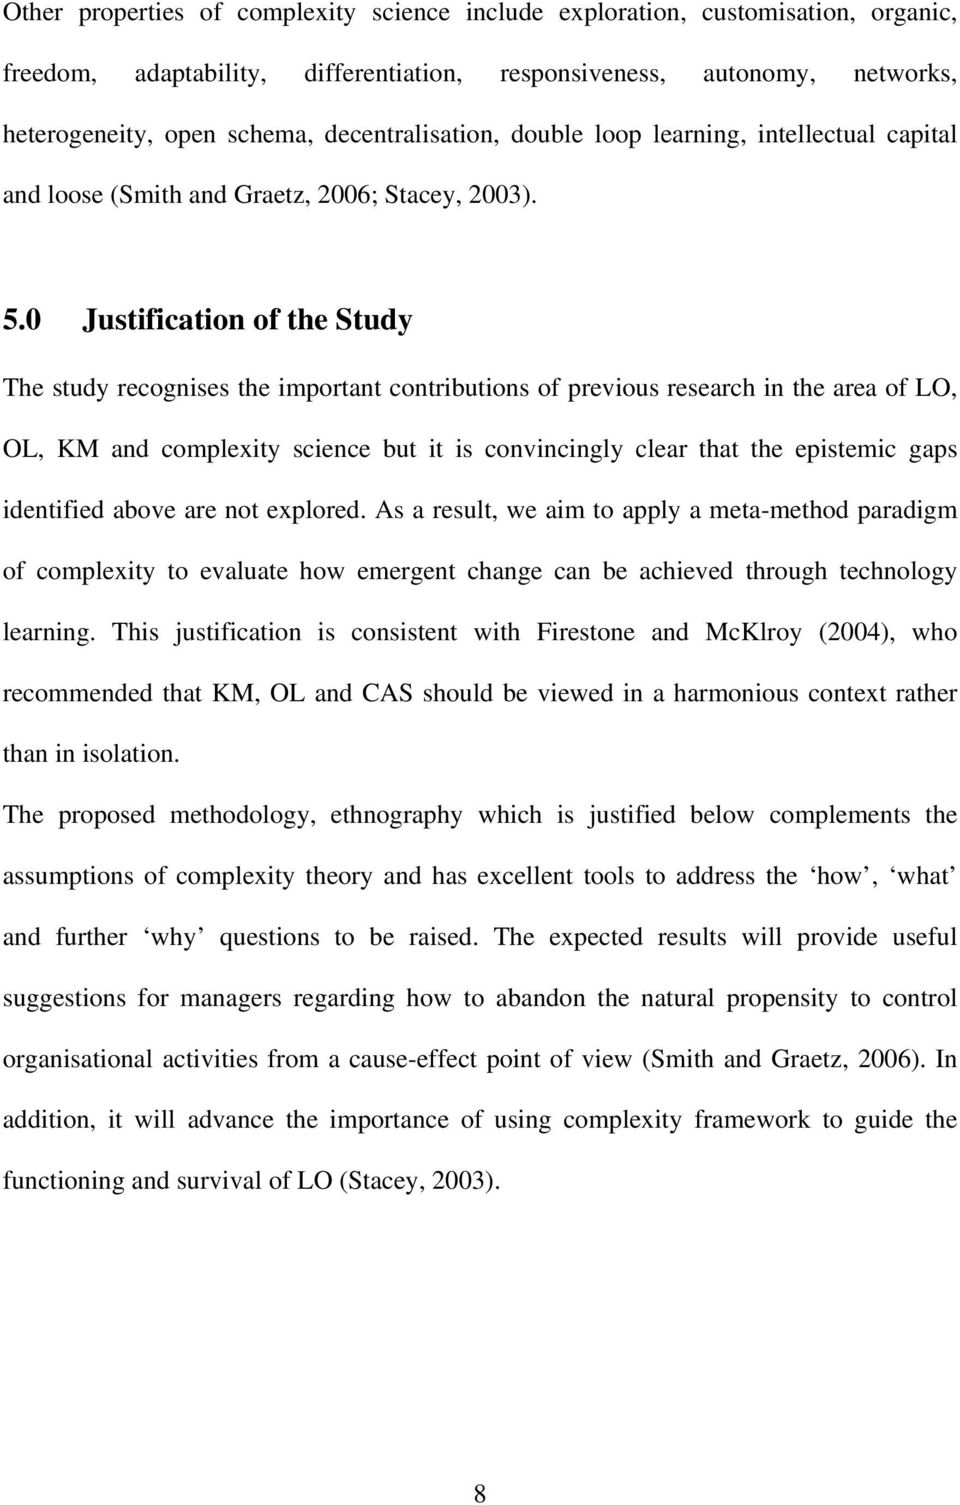 0 Justification of the Study The study recognises the important contributions of previous research in the area of LO, OL, KM and complexity science but it is convincingly clear that the epistemic